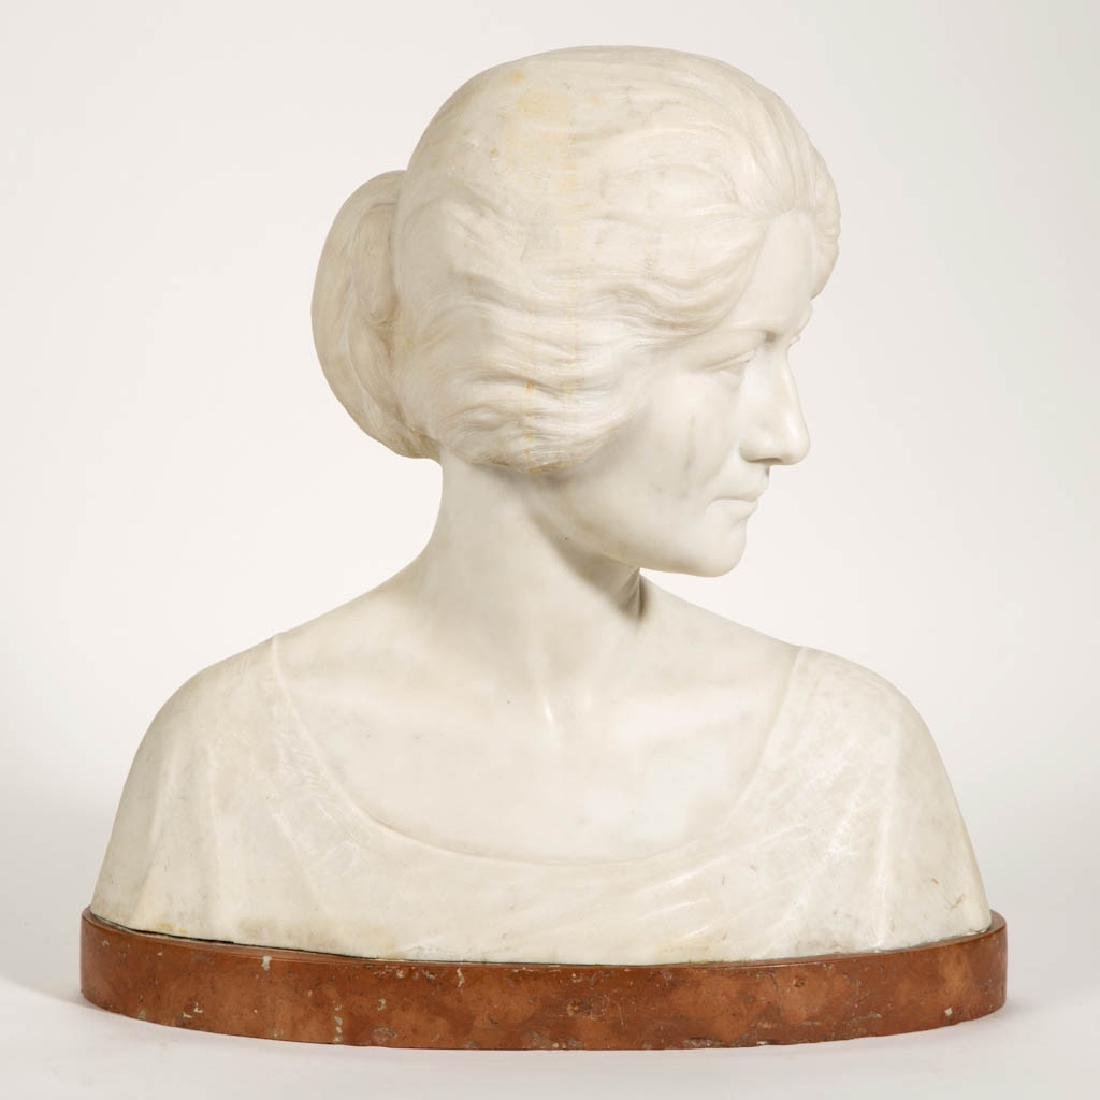 AMERICAN OR EUROPEAN CARVED MARBLE BUST OF A WOMAN